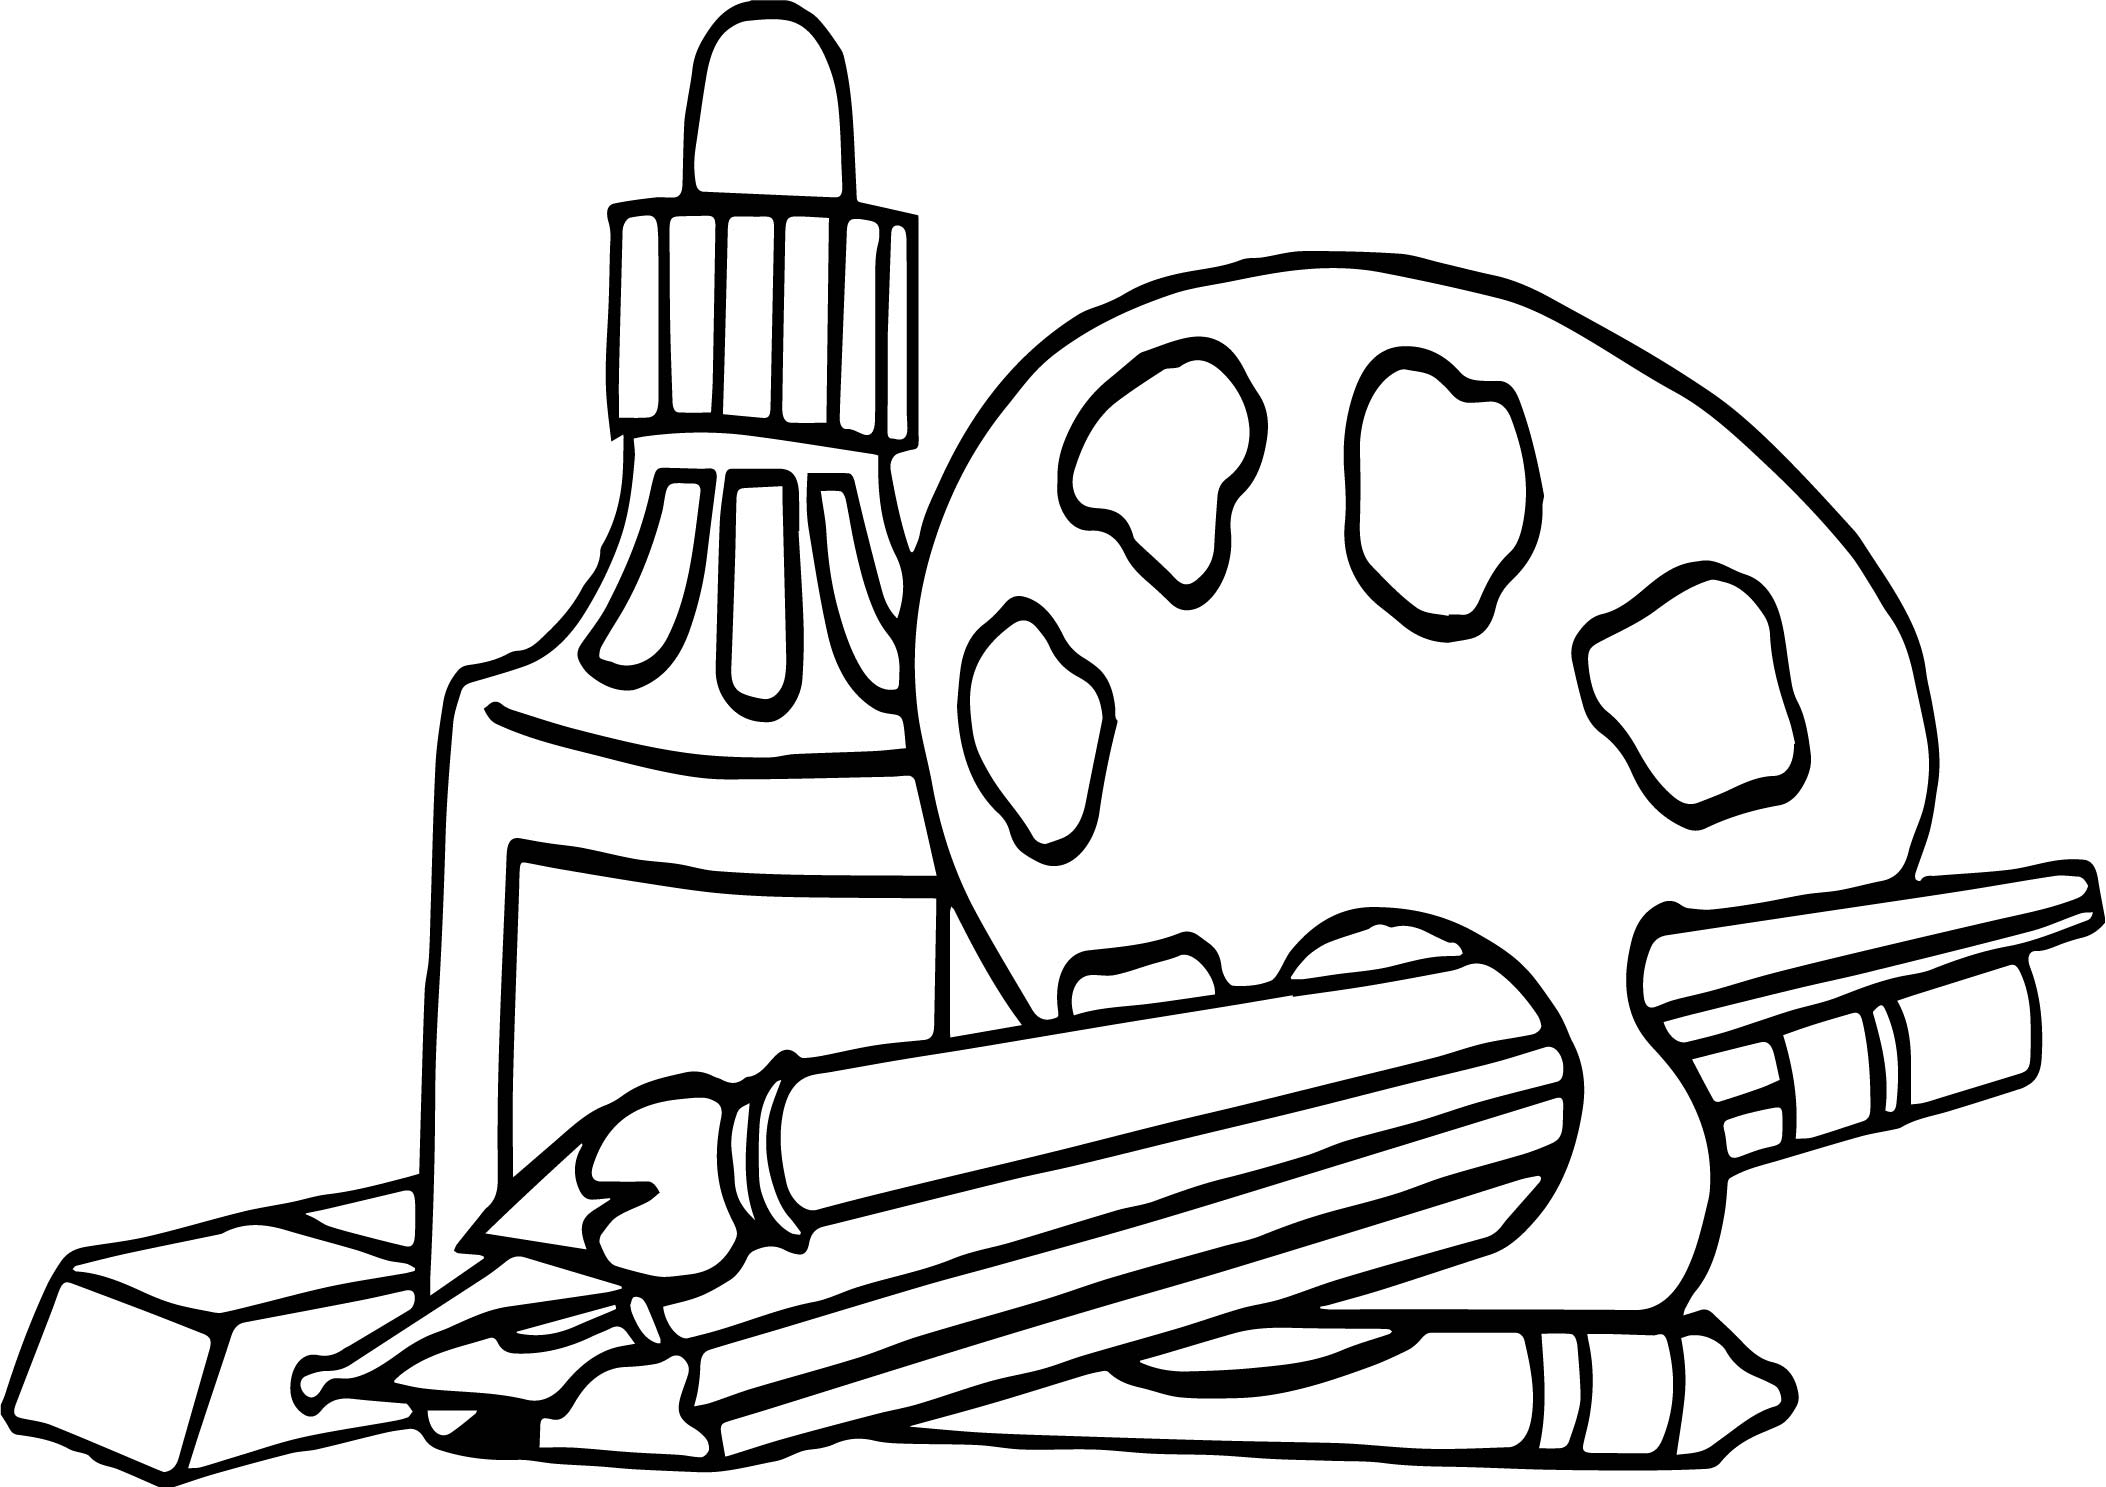 free art supply coloring pages | Art Supplies Coloring Pages | Free download best Art ...